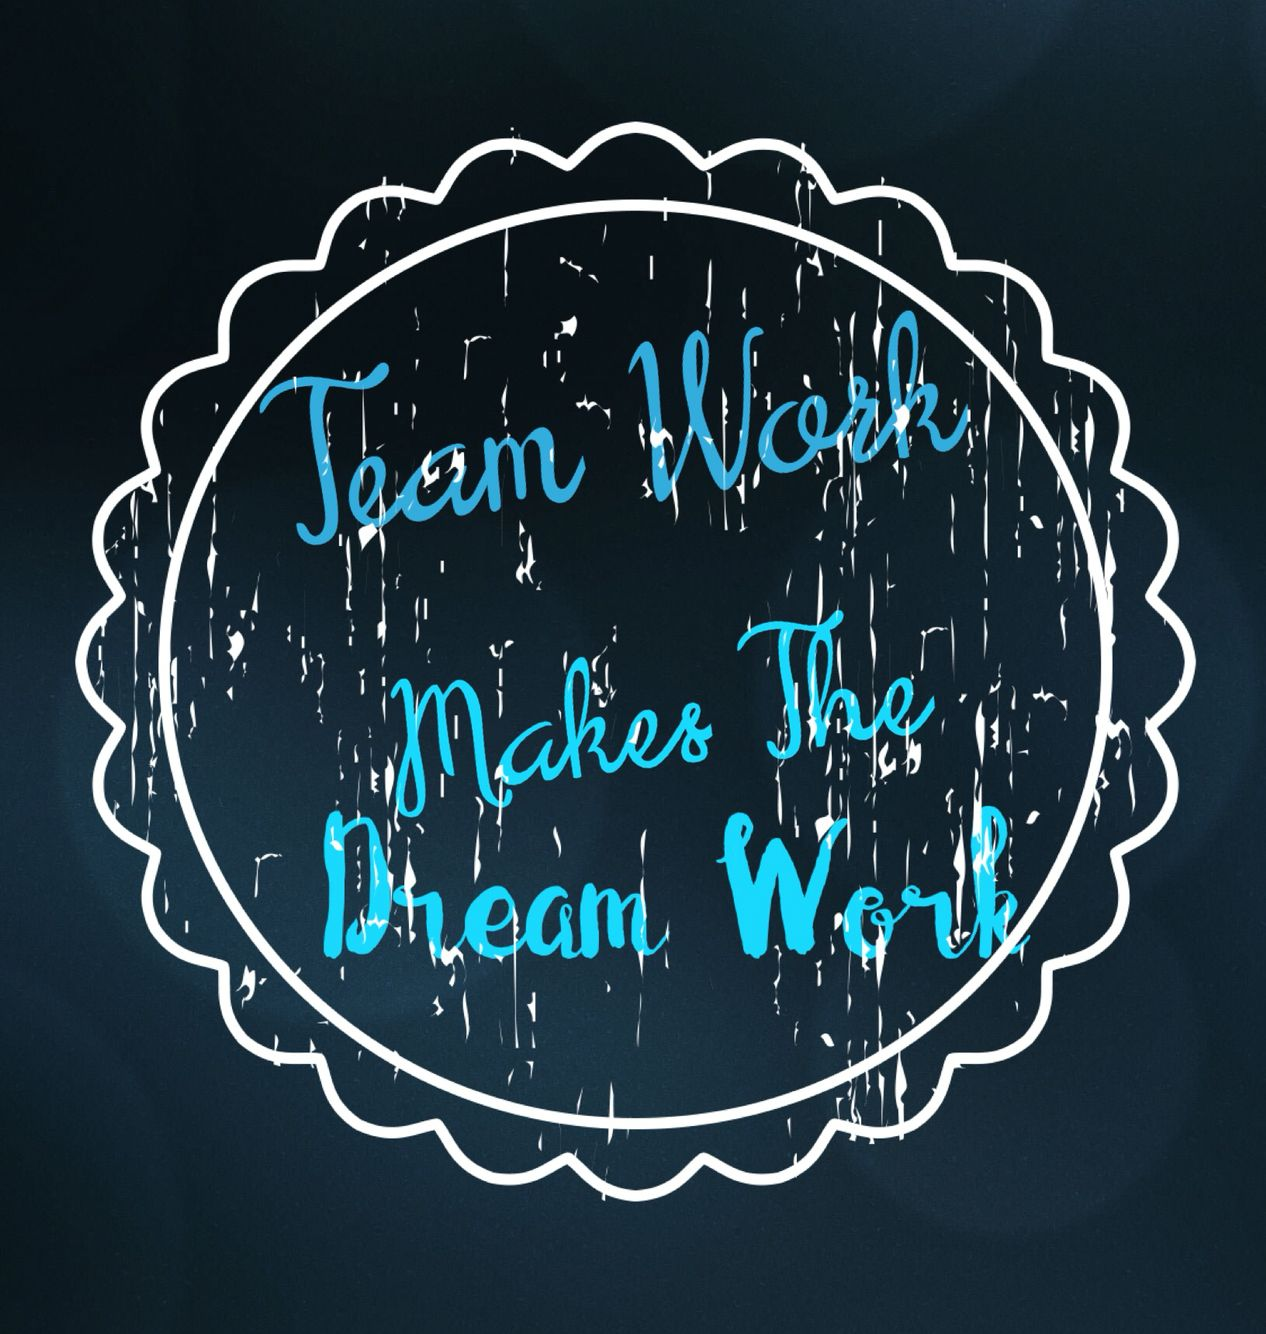 25 Best Memes About Dream Work: Teamwork Makes The Dream Work. Motivational Quotes